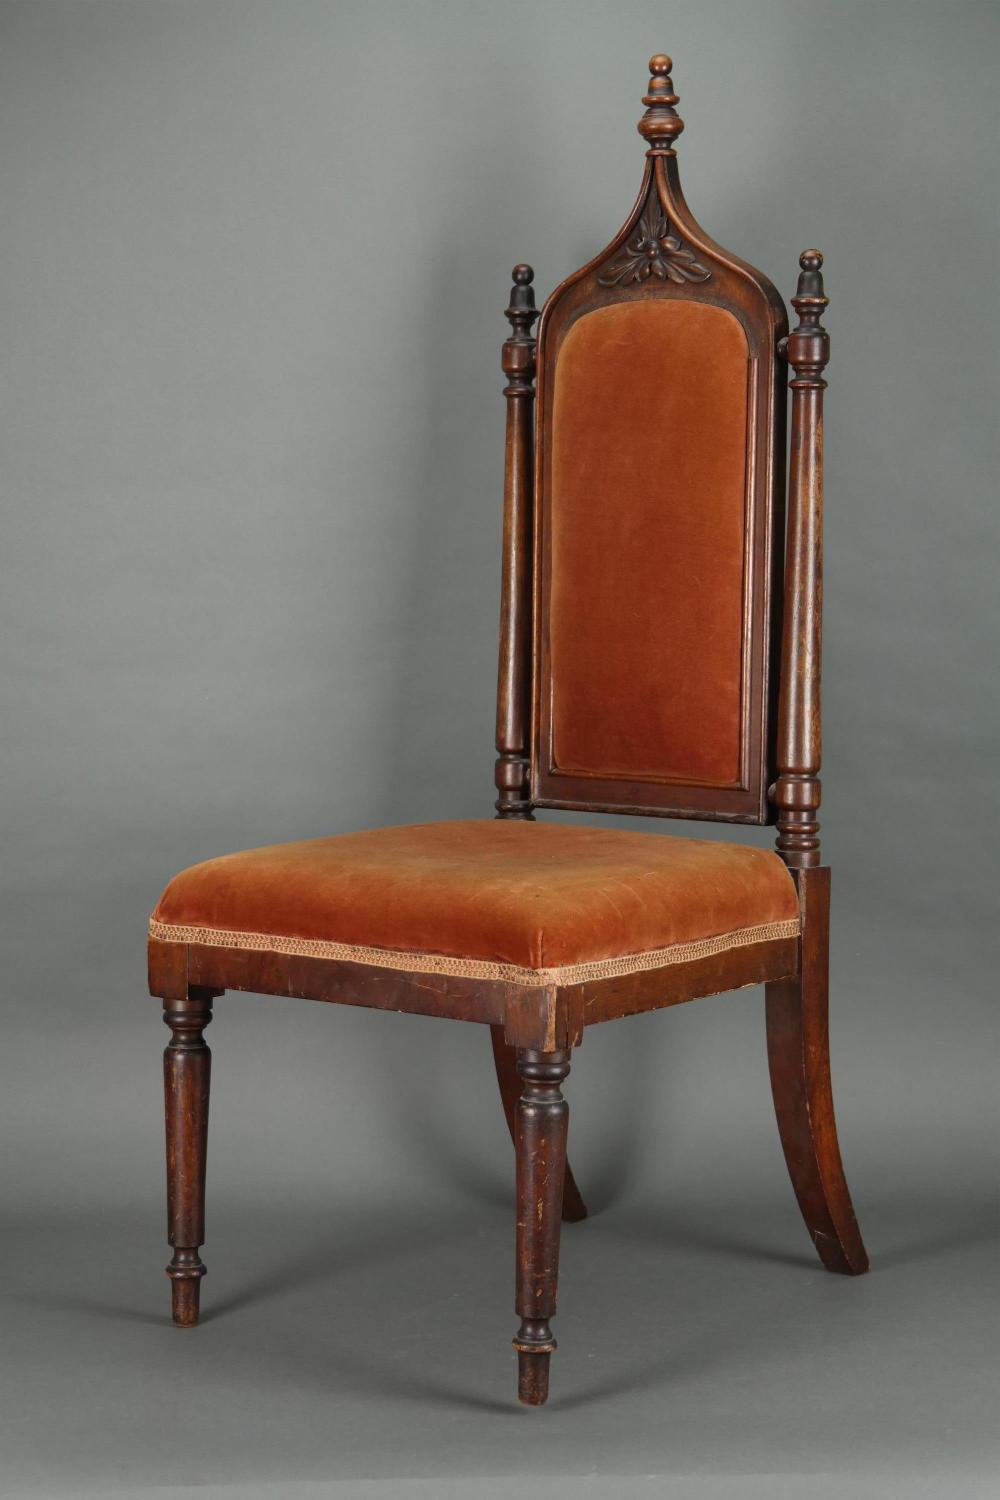 Lot 305: H. W. Longfellow's Personal Side Chair. c.1843.